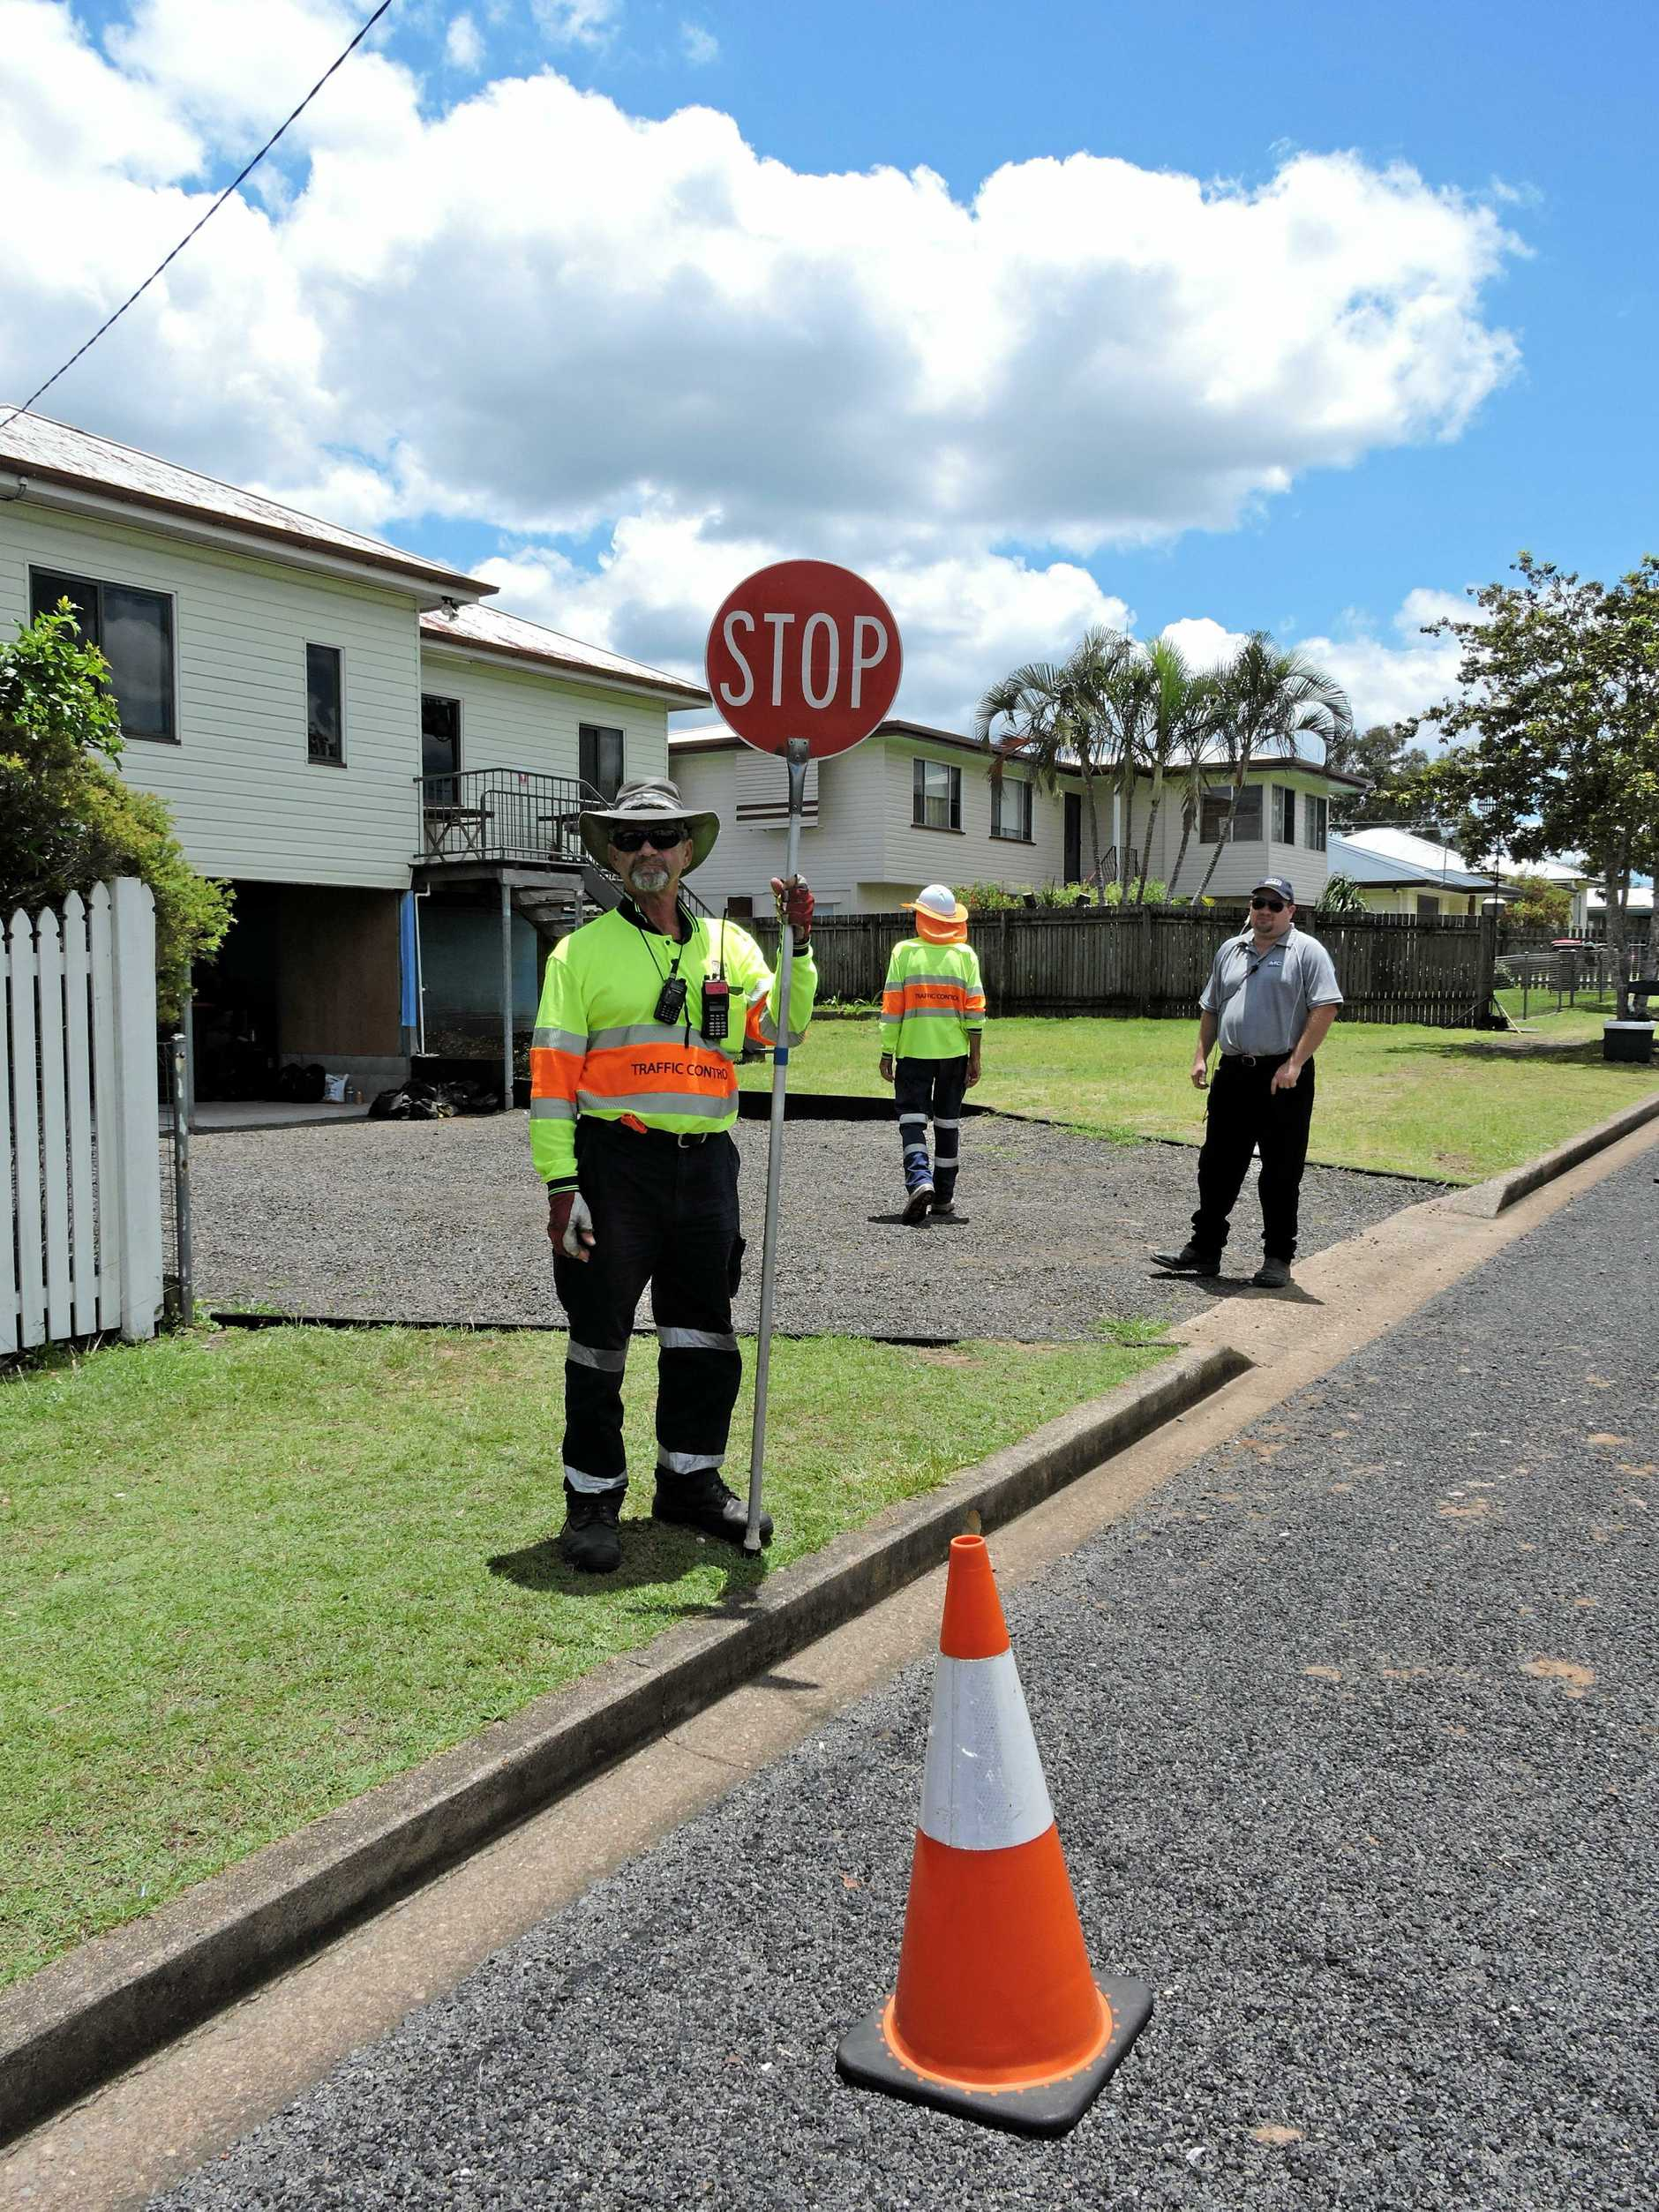 Frank from Hervey Bay Traffic is ready for any road issues during the Reality TV show House Rules renovations of a Neptune St home in Maryborough.